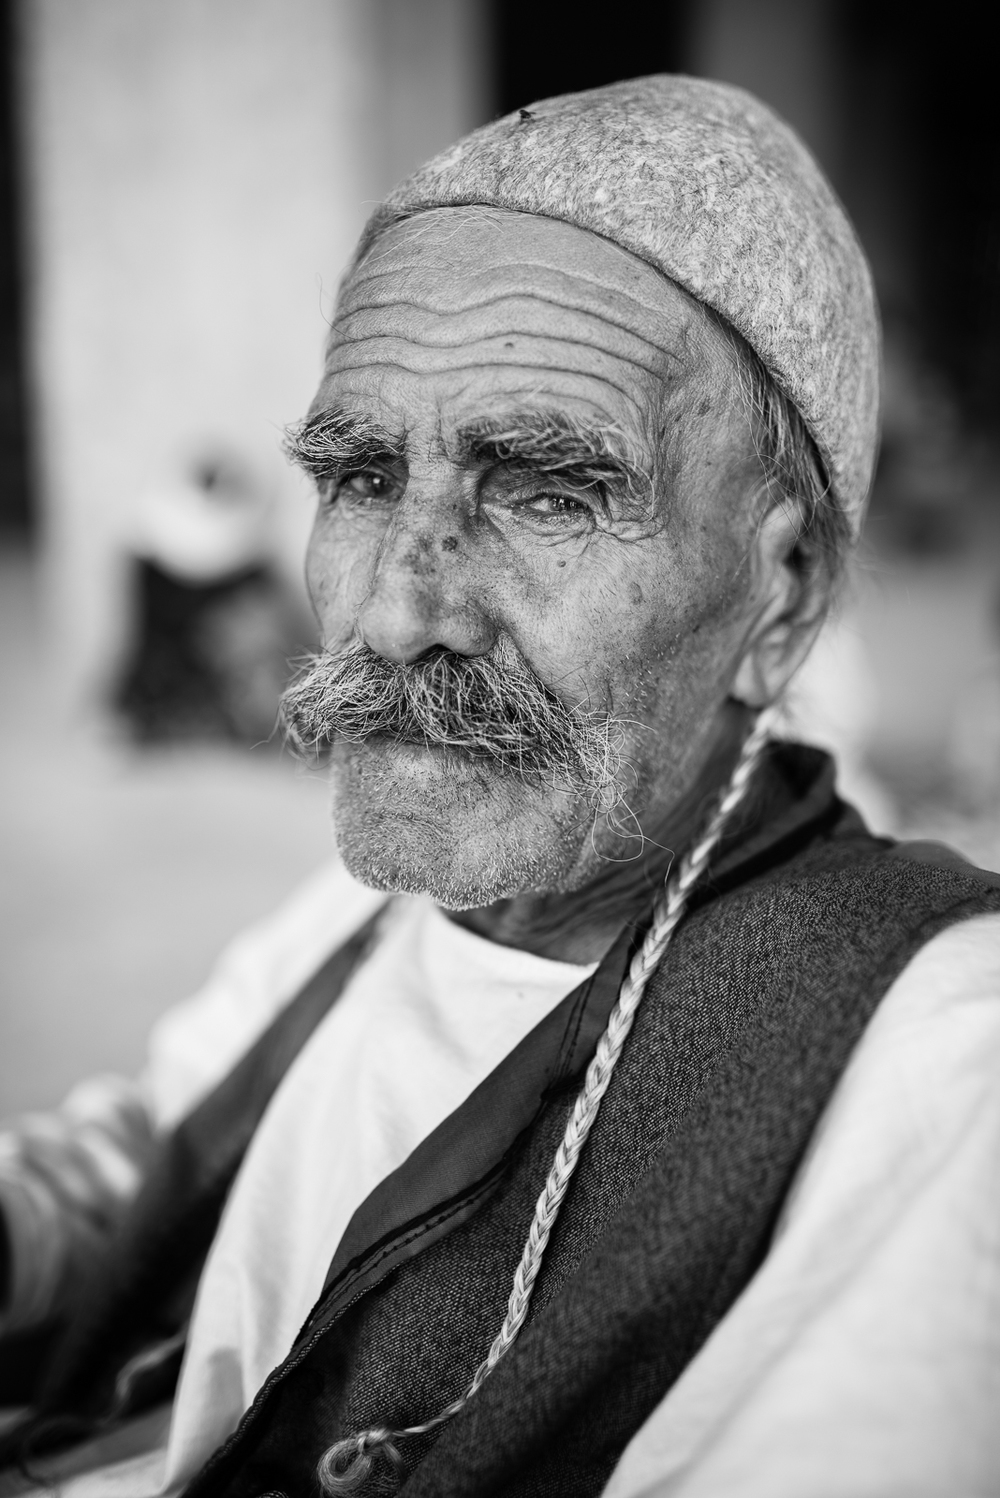 Yazidi old man in Zakho under construction building